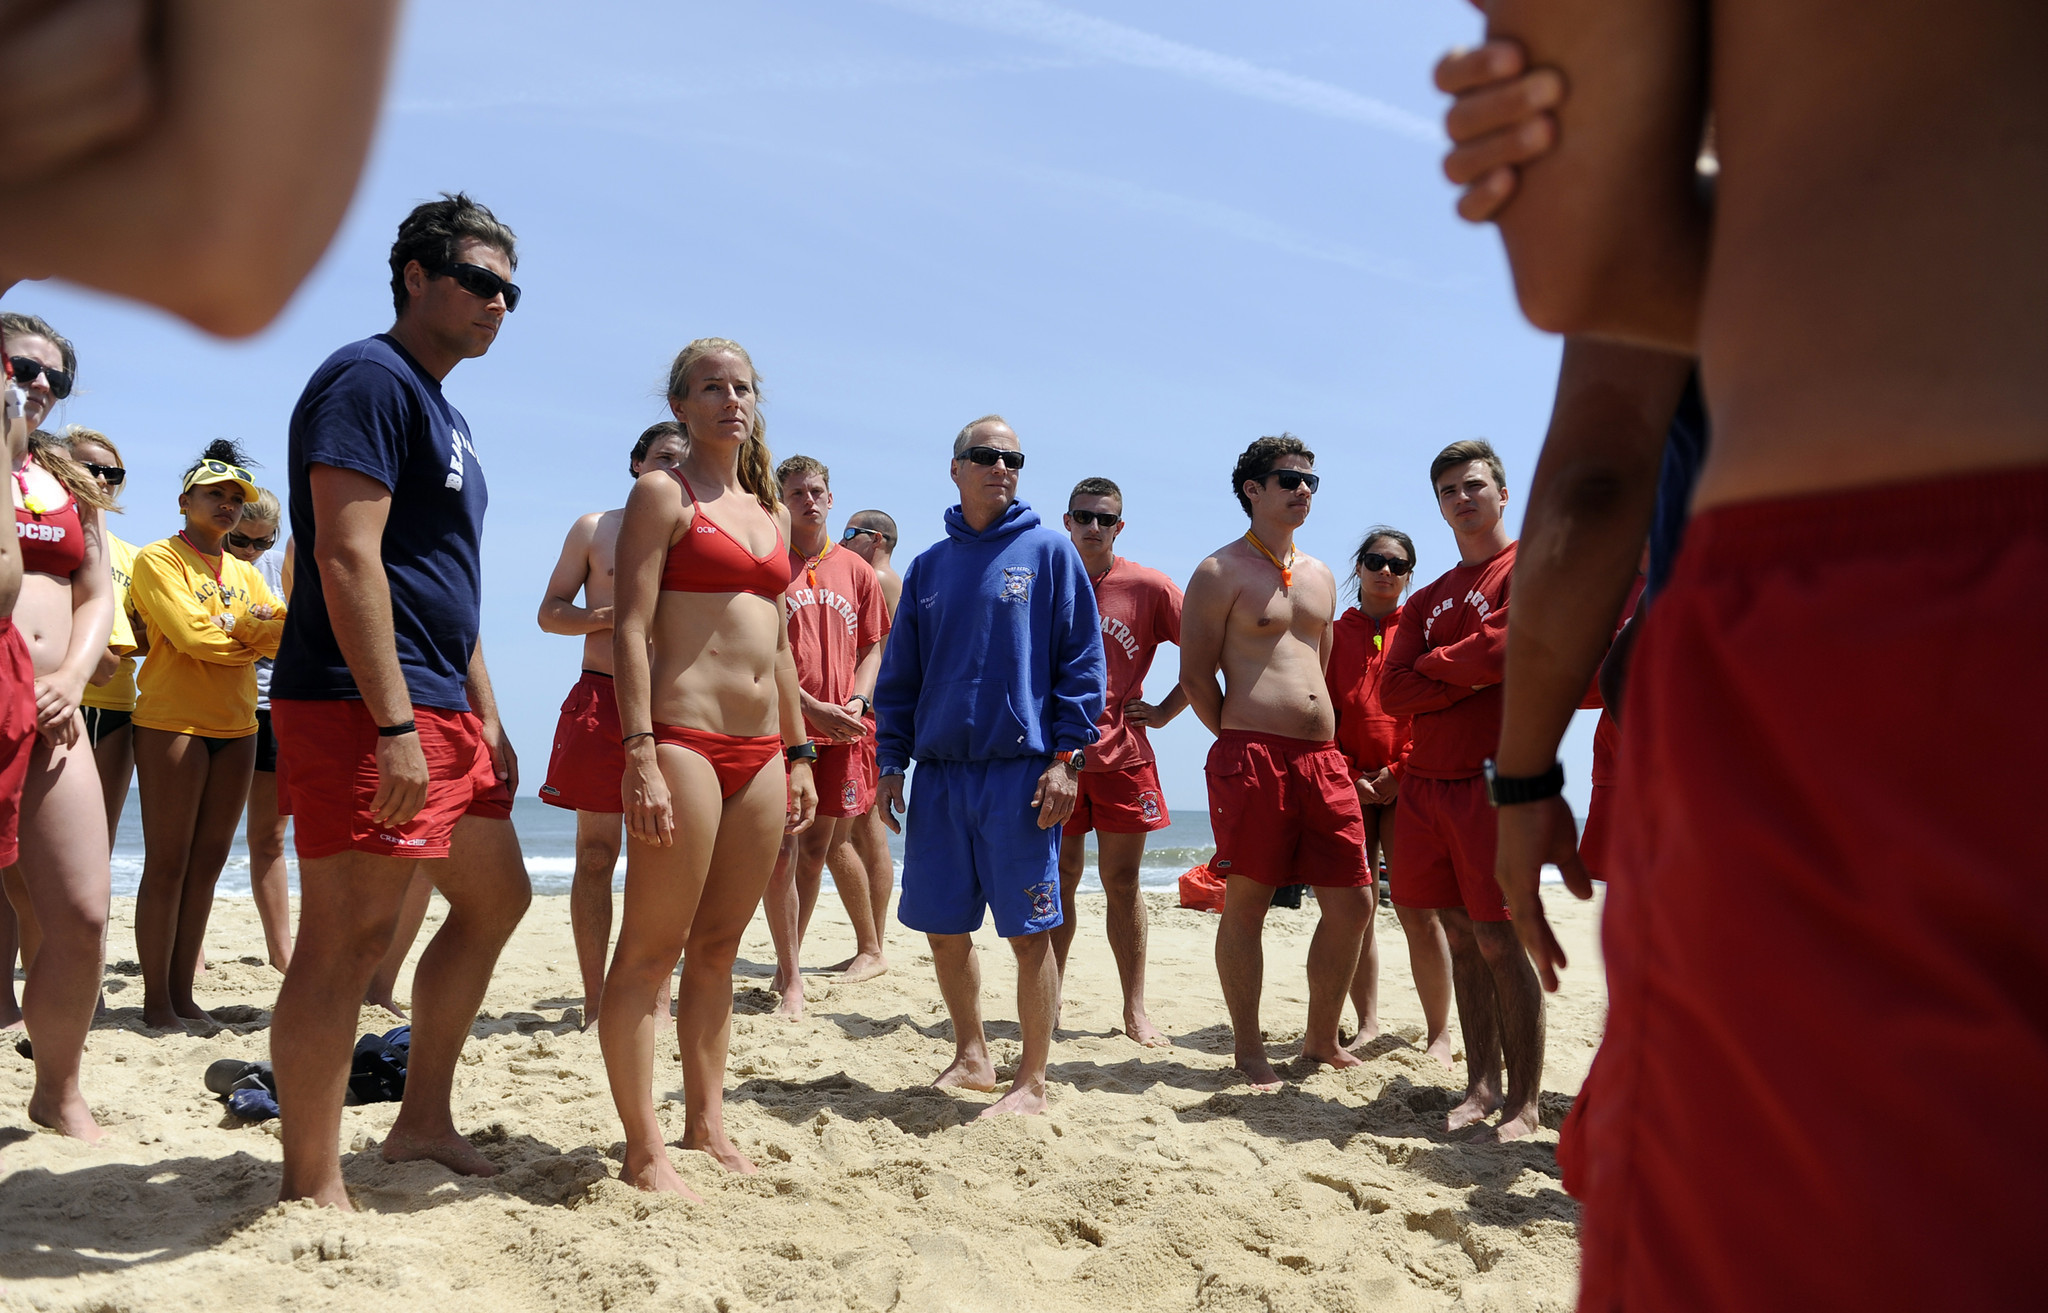 Naked on the Beach: Topless Women Now Allowed at Ocean